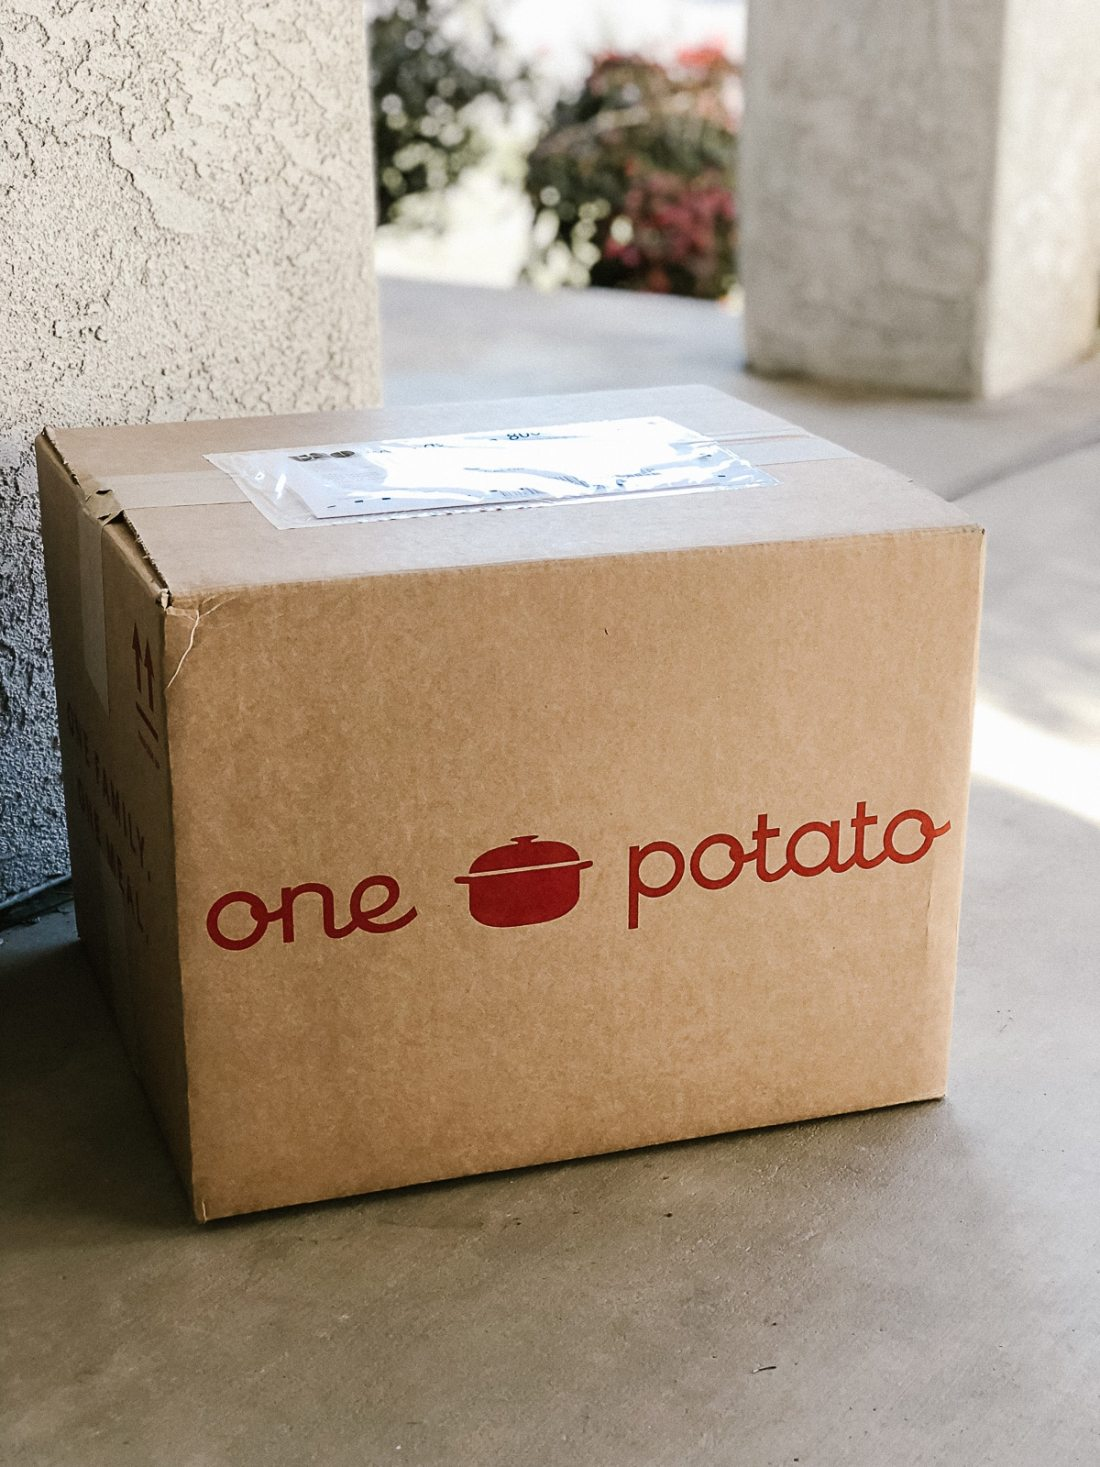 One Potato Food Subscription Box + Coupon Code